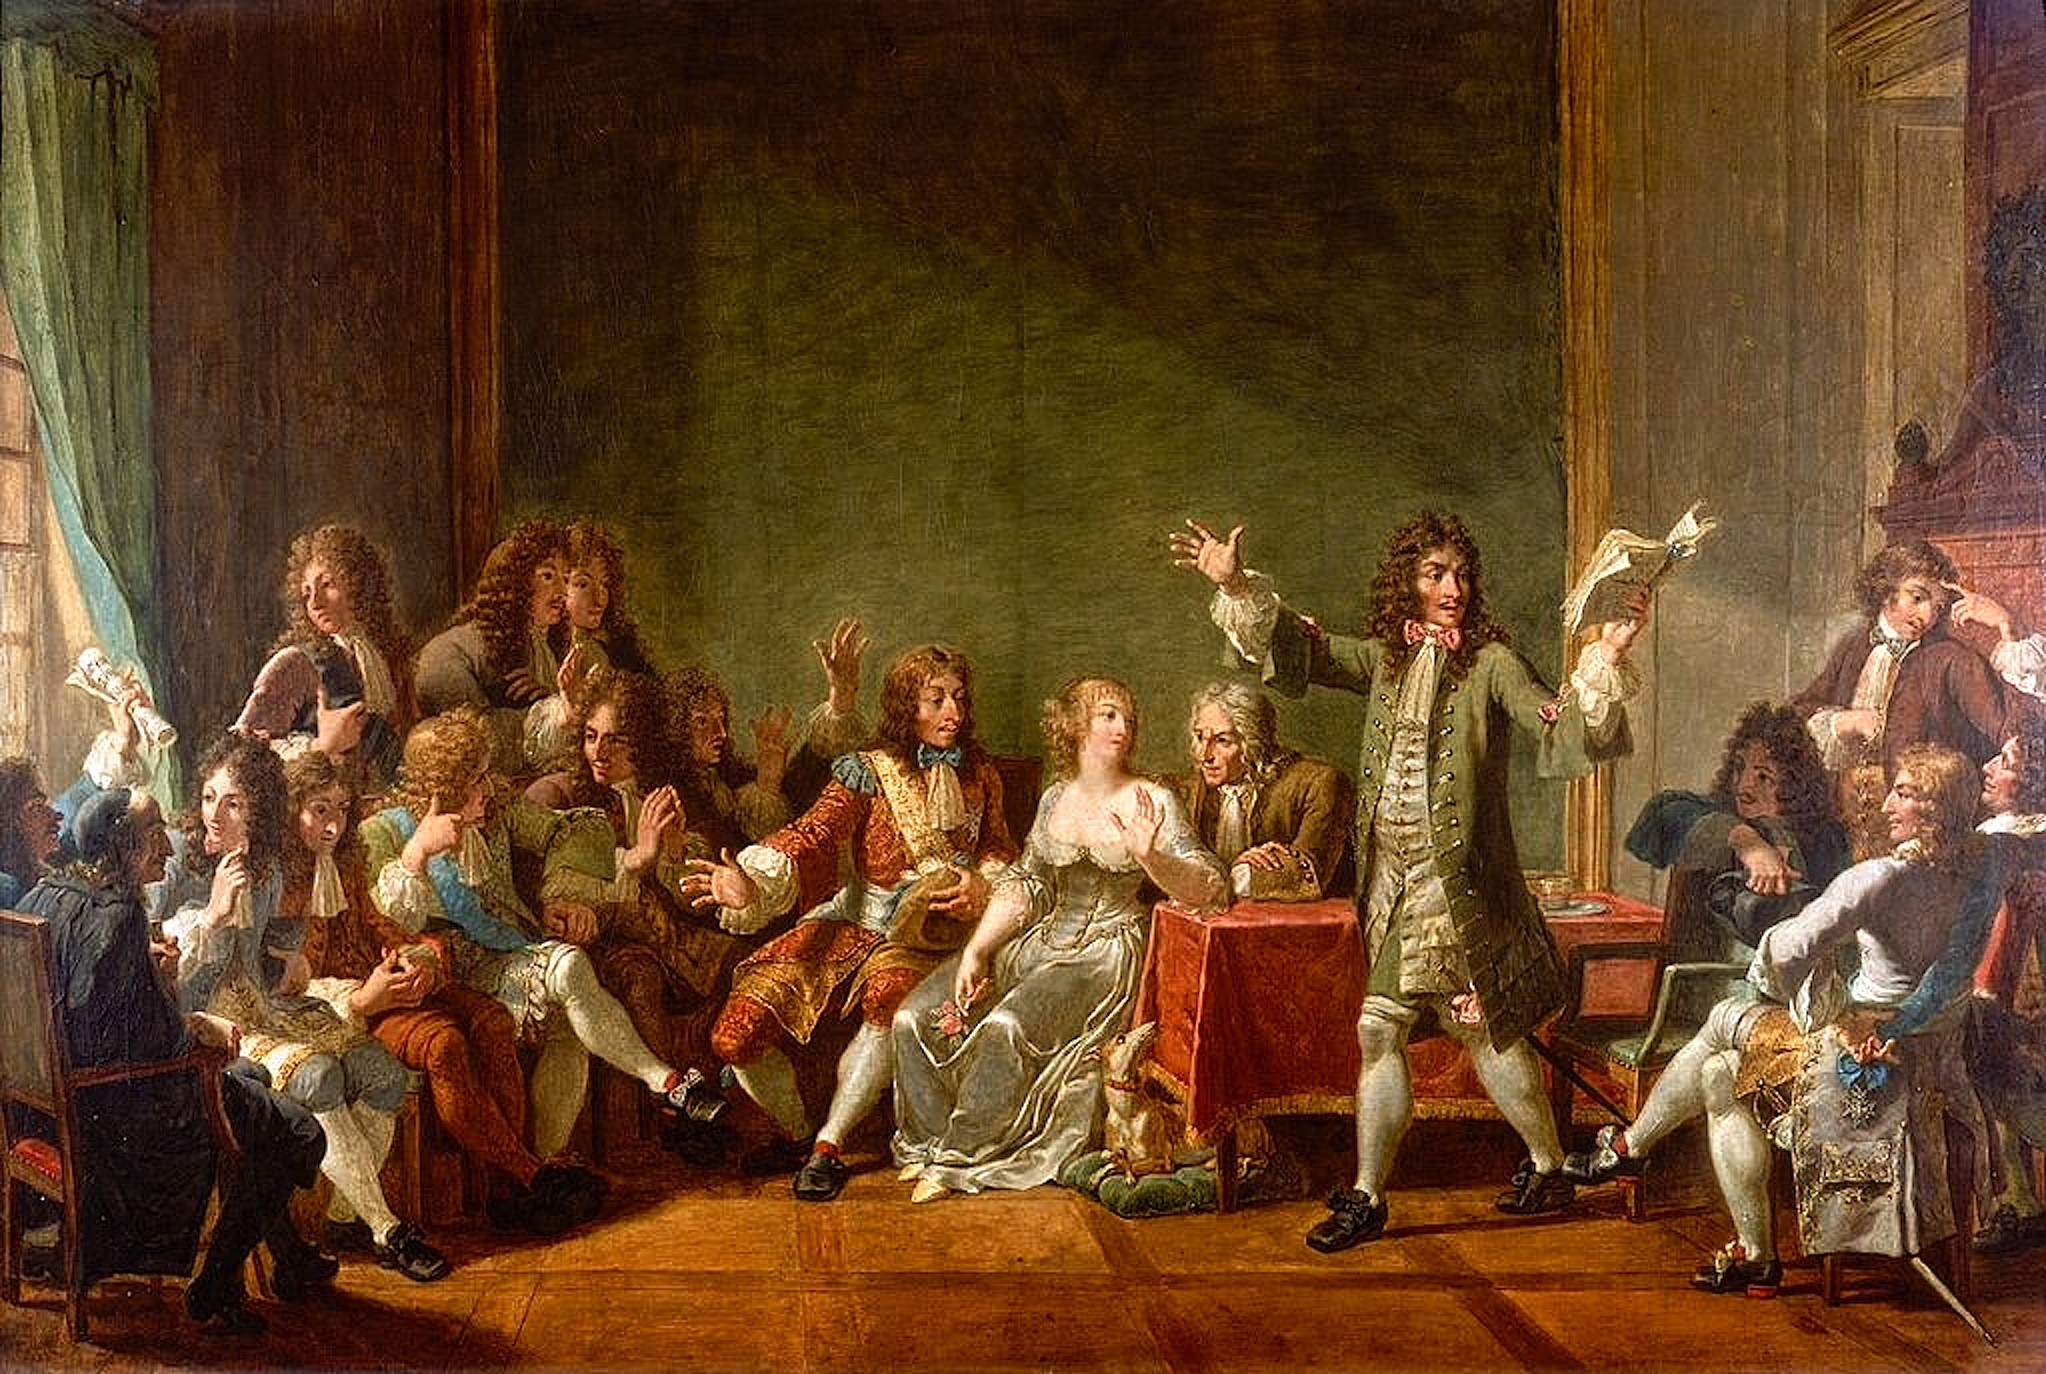 Nicolas-André Monsiau – Molière Reading Tartuffe at Salon of Anne 'Ninon' de l'Enclos